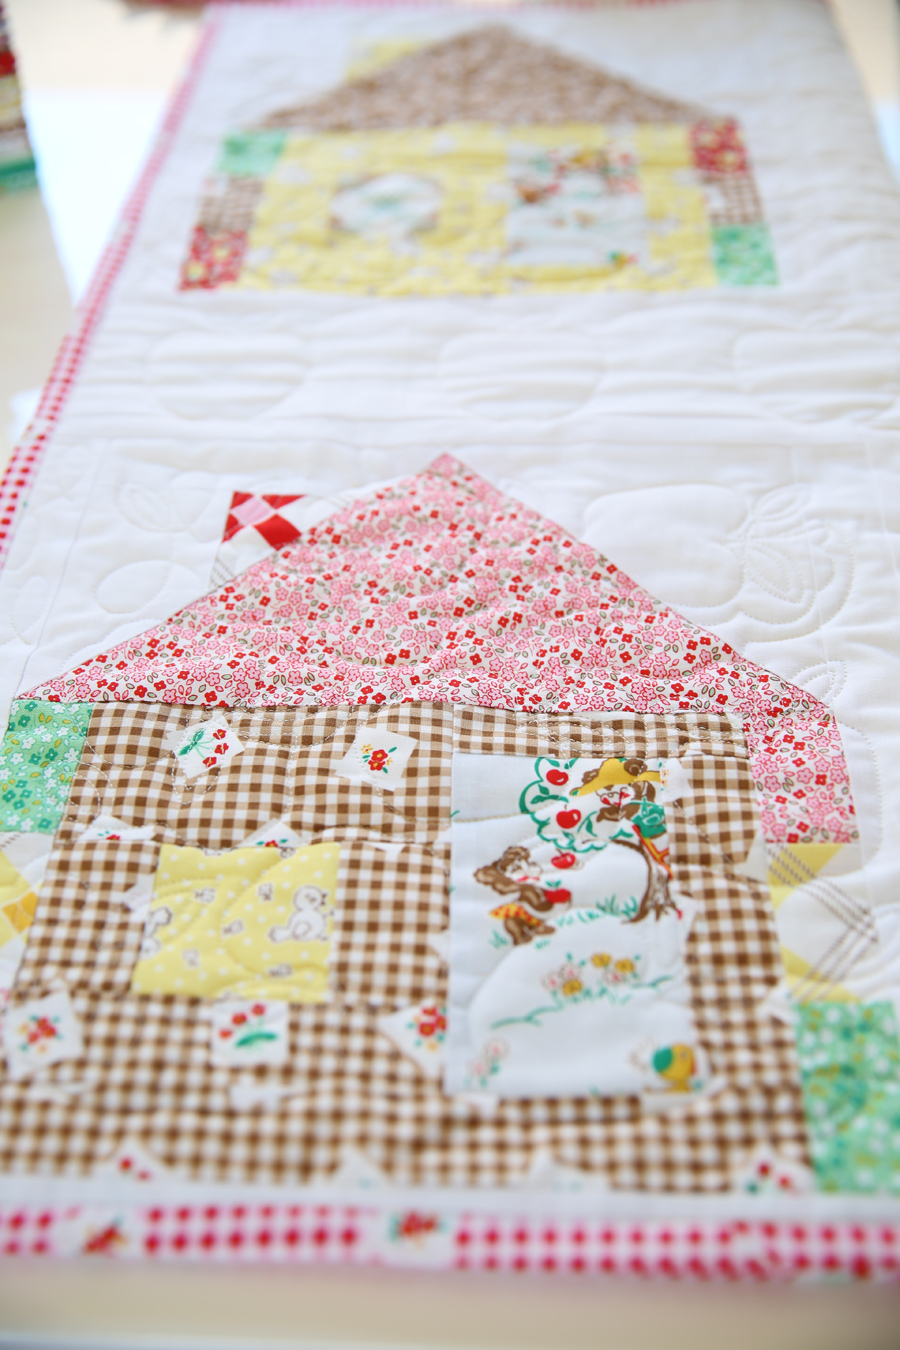 Apple Farm fabric by Elea Lutz for Penny Rose and Pretty Playtime Quilts